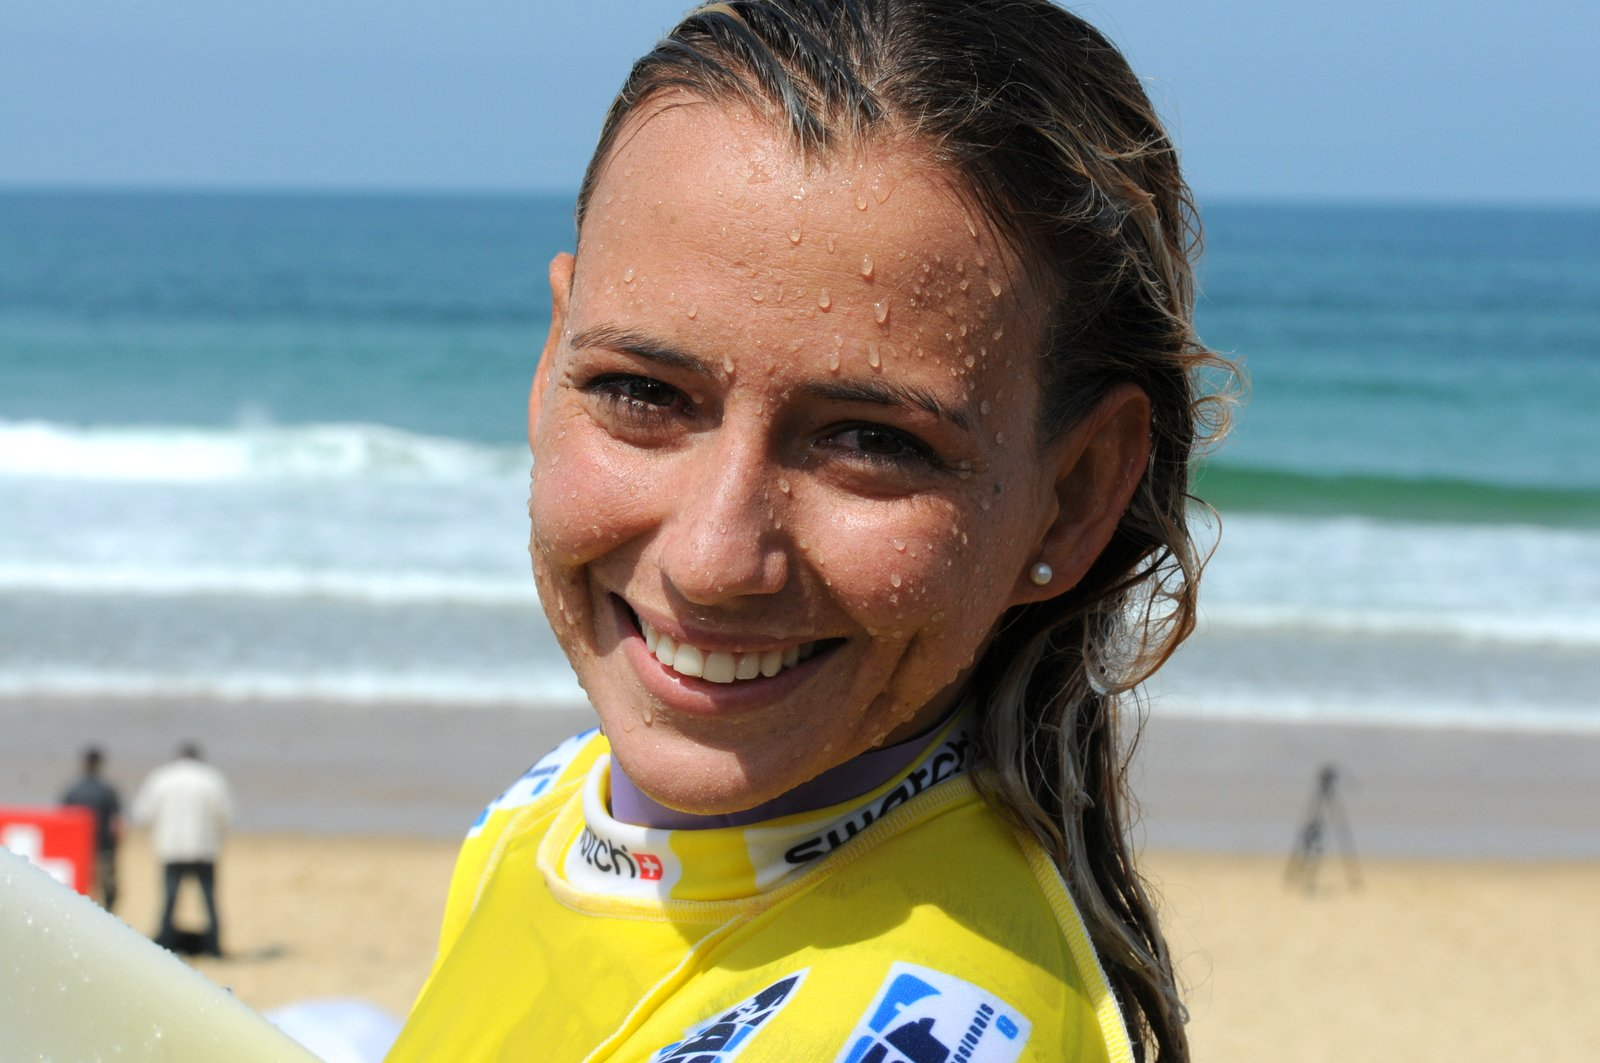 Maud Le Car au Swatch Girls Pro 2012 Day 2 © Maxim Mladenov - alohabrah.fr